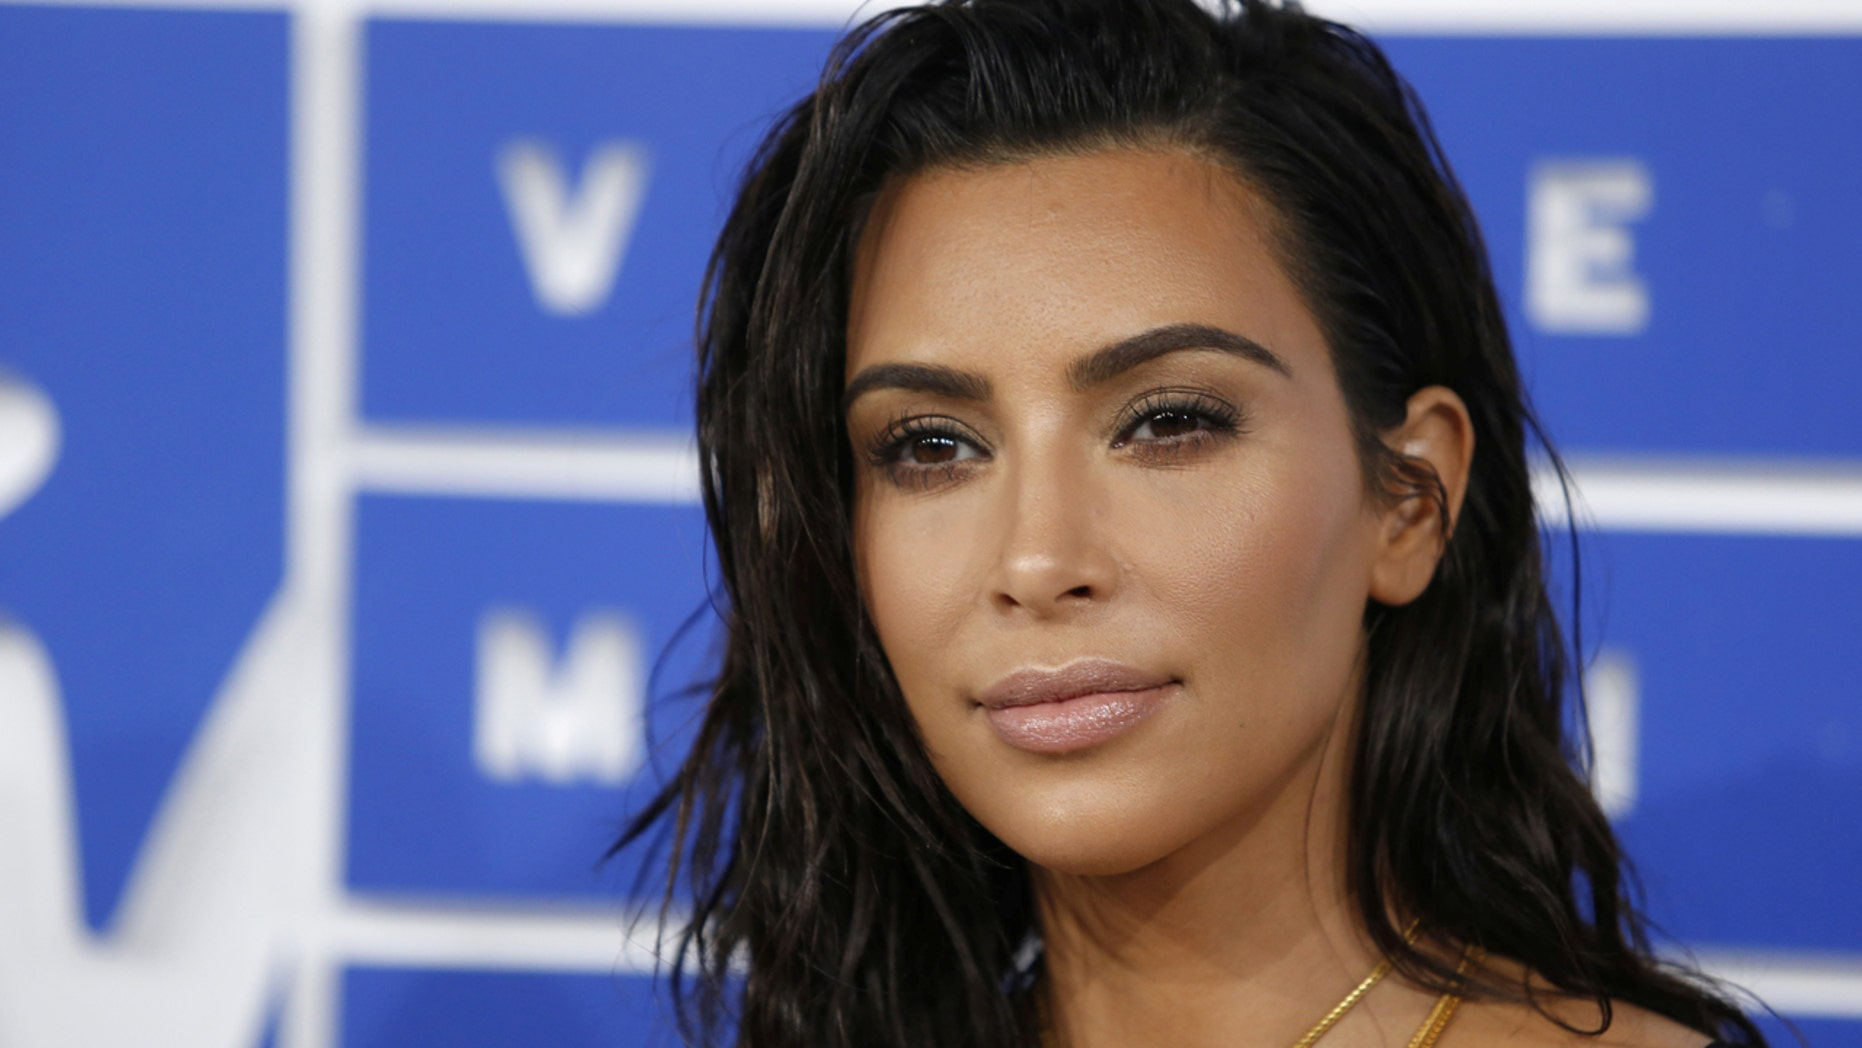 FILE PHOTO: Kim Kardashian arrives at the 2016 MTV Video Music Awards in New York, U.S., August 28, 2016.